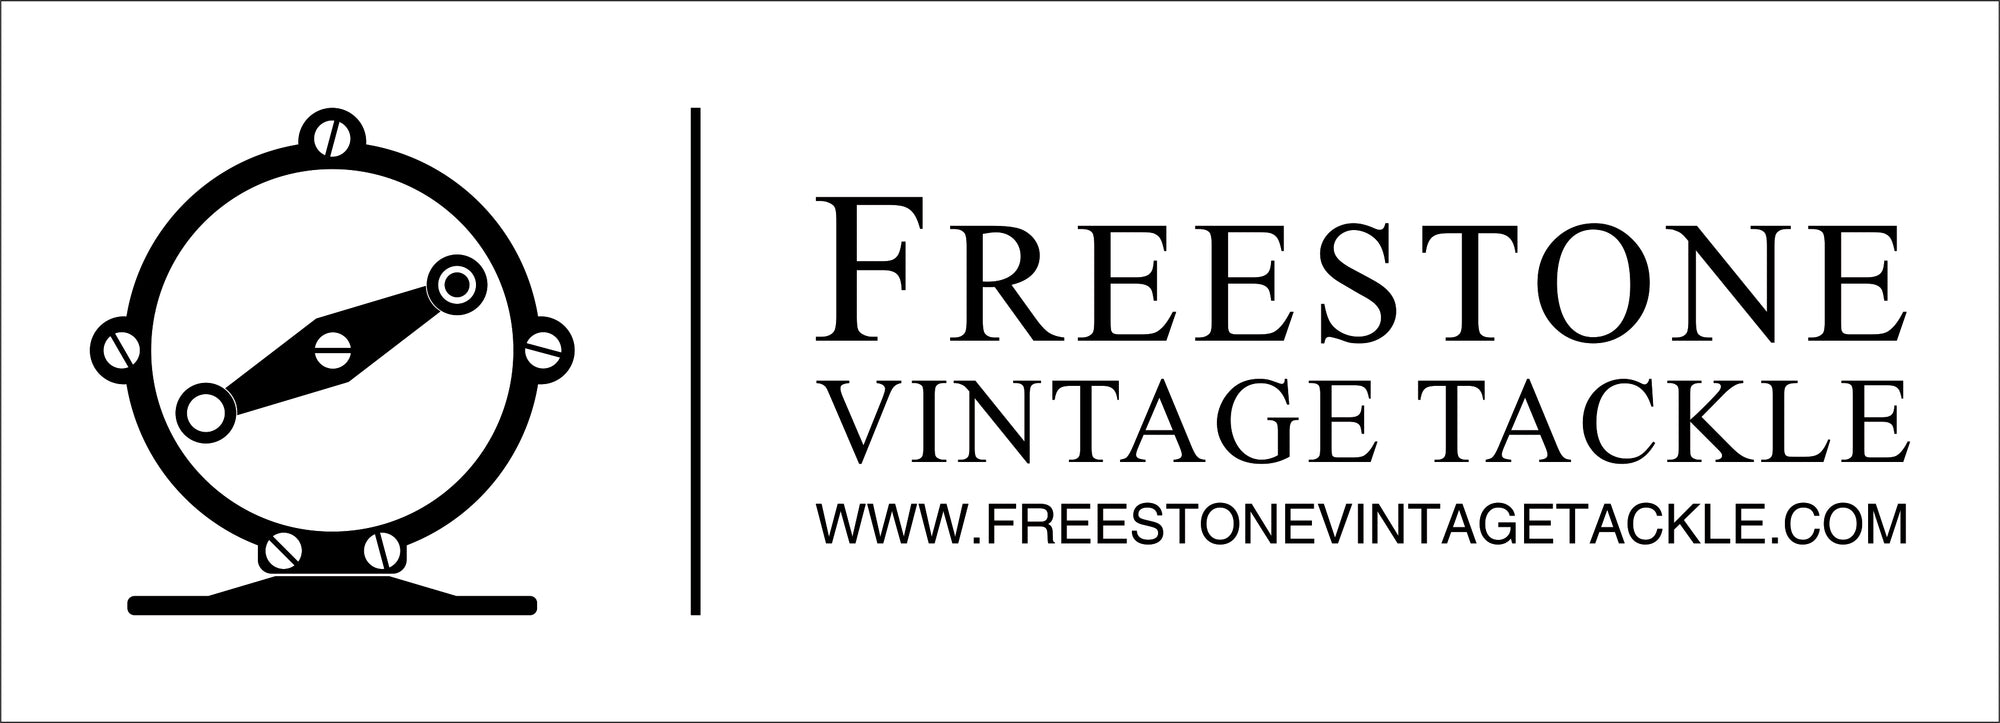 Freestone Vintage Tackle